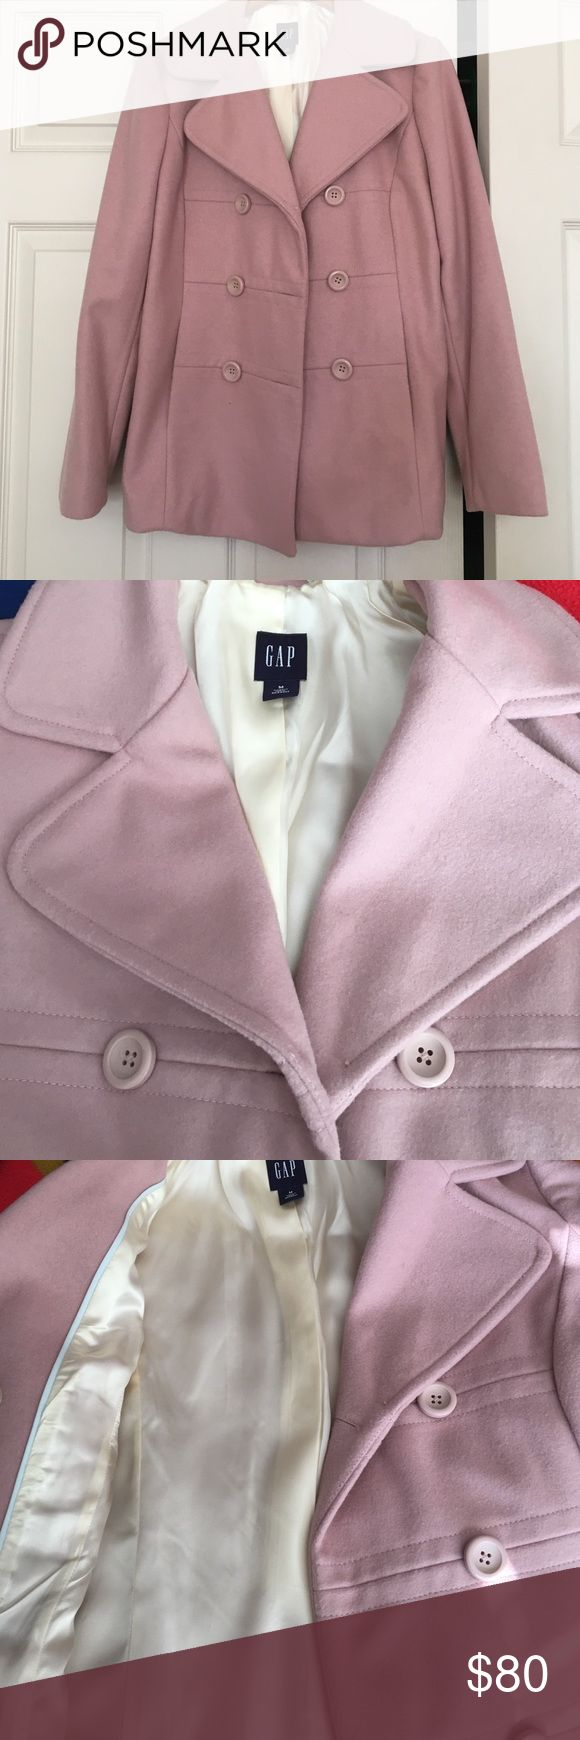 Women's Gap Coat Women's pale pink, Gap, double breasted peacoat with cream lining. Great condition--barely worn. GAP Jackets & Coats Pea Coats